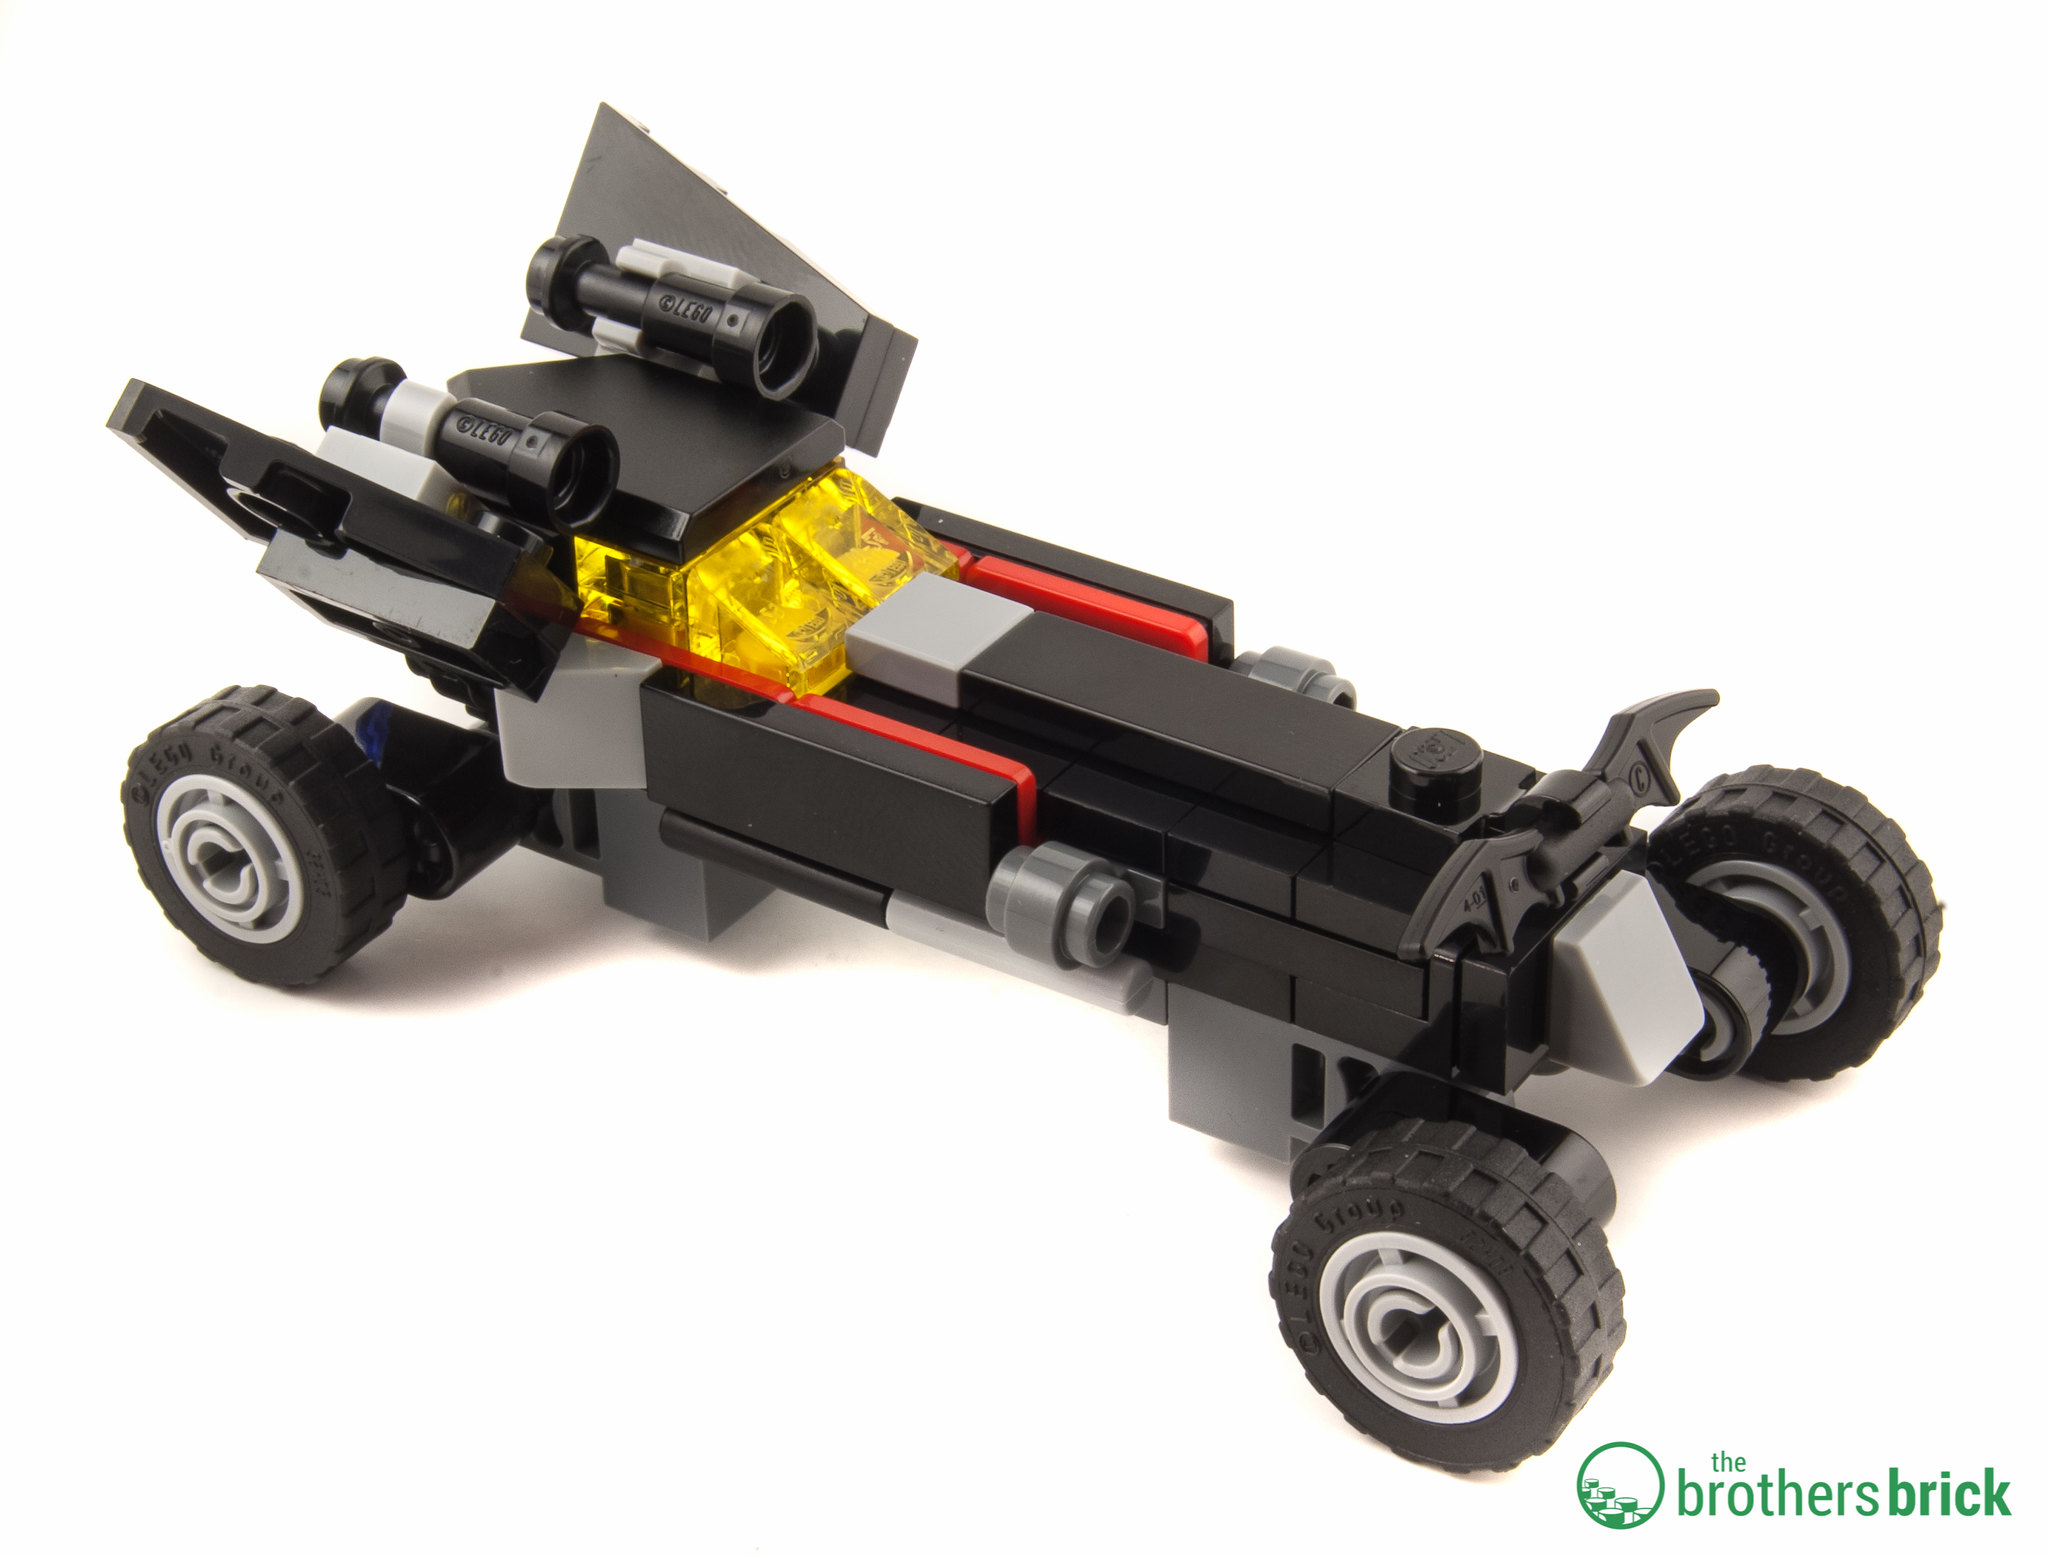 new lego batman movie batmobile batwing mini sets. Black Bedroom Furniture Sets. Home Design Ideas